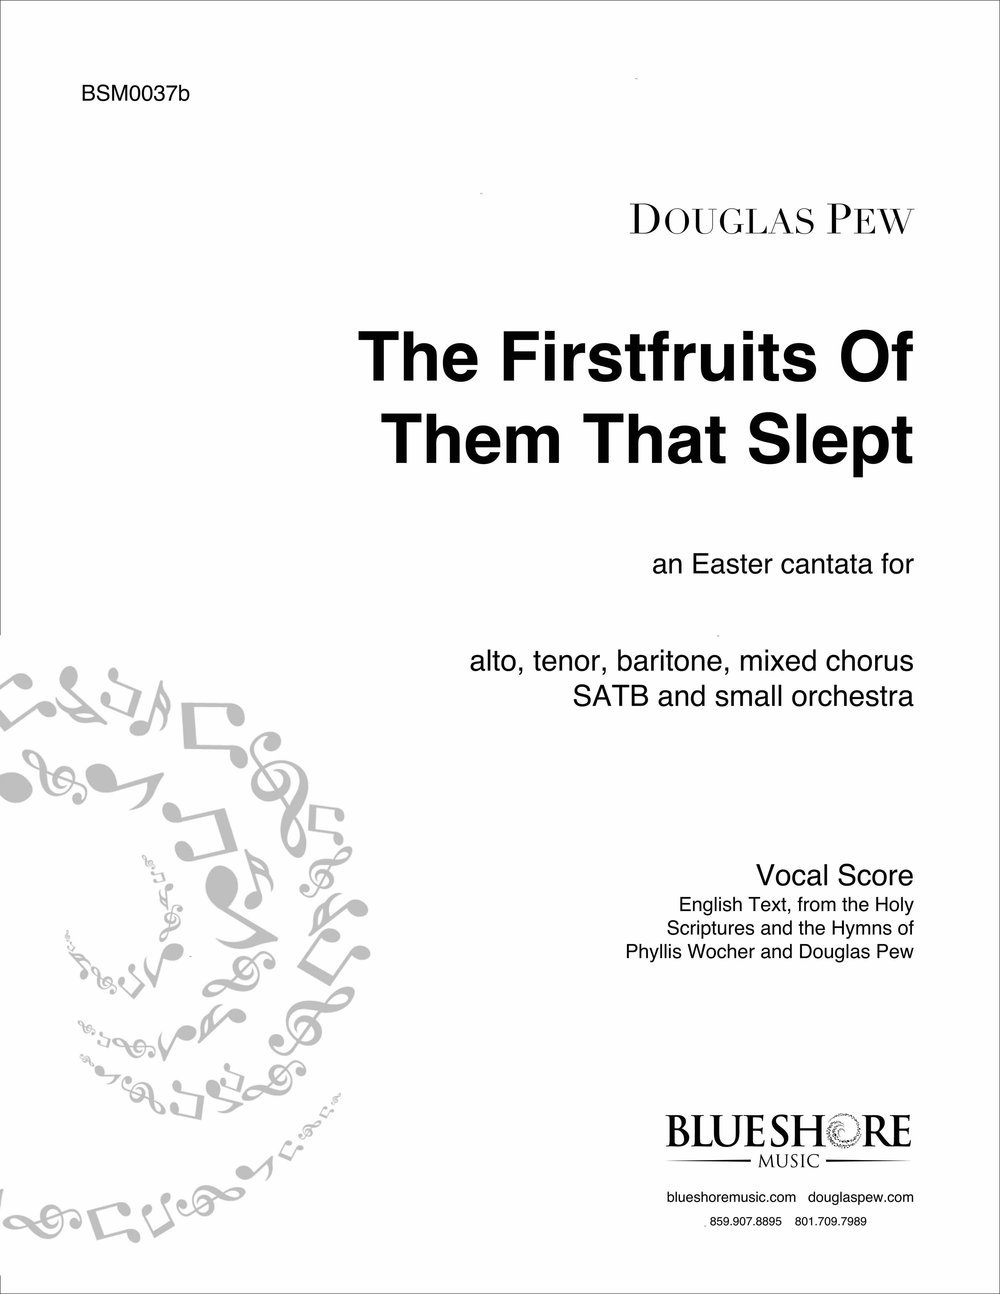 The Firstfruits Of Them That Slept, Easter Cantata for Soloists, SATB, and Small Orchestra